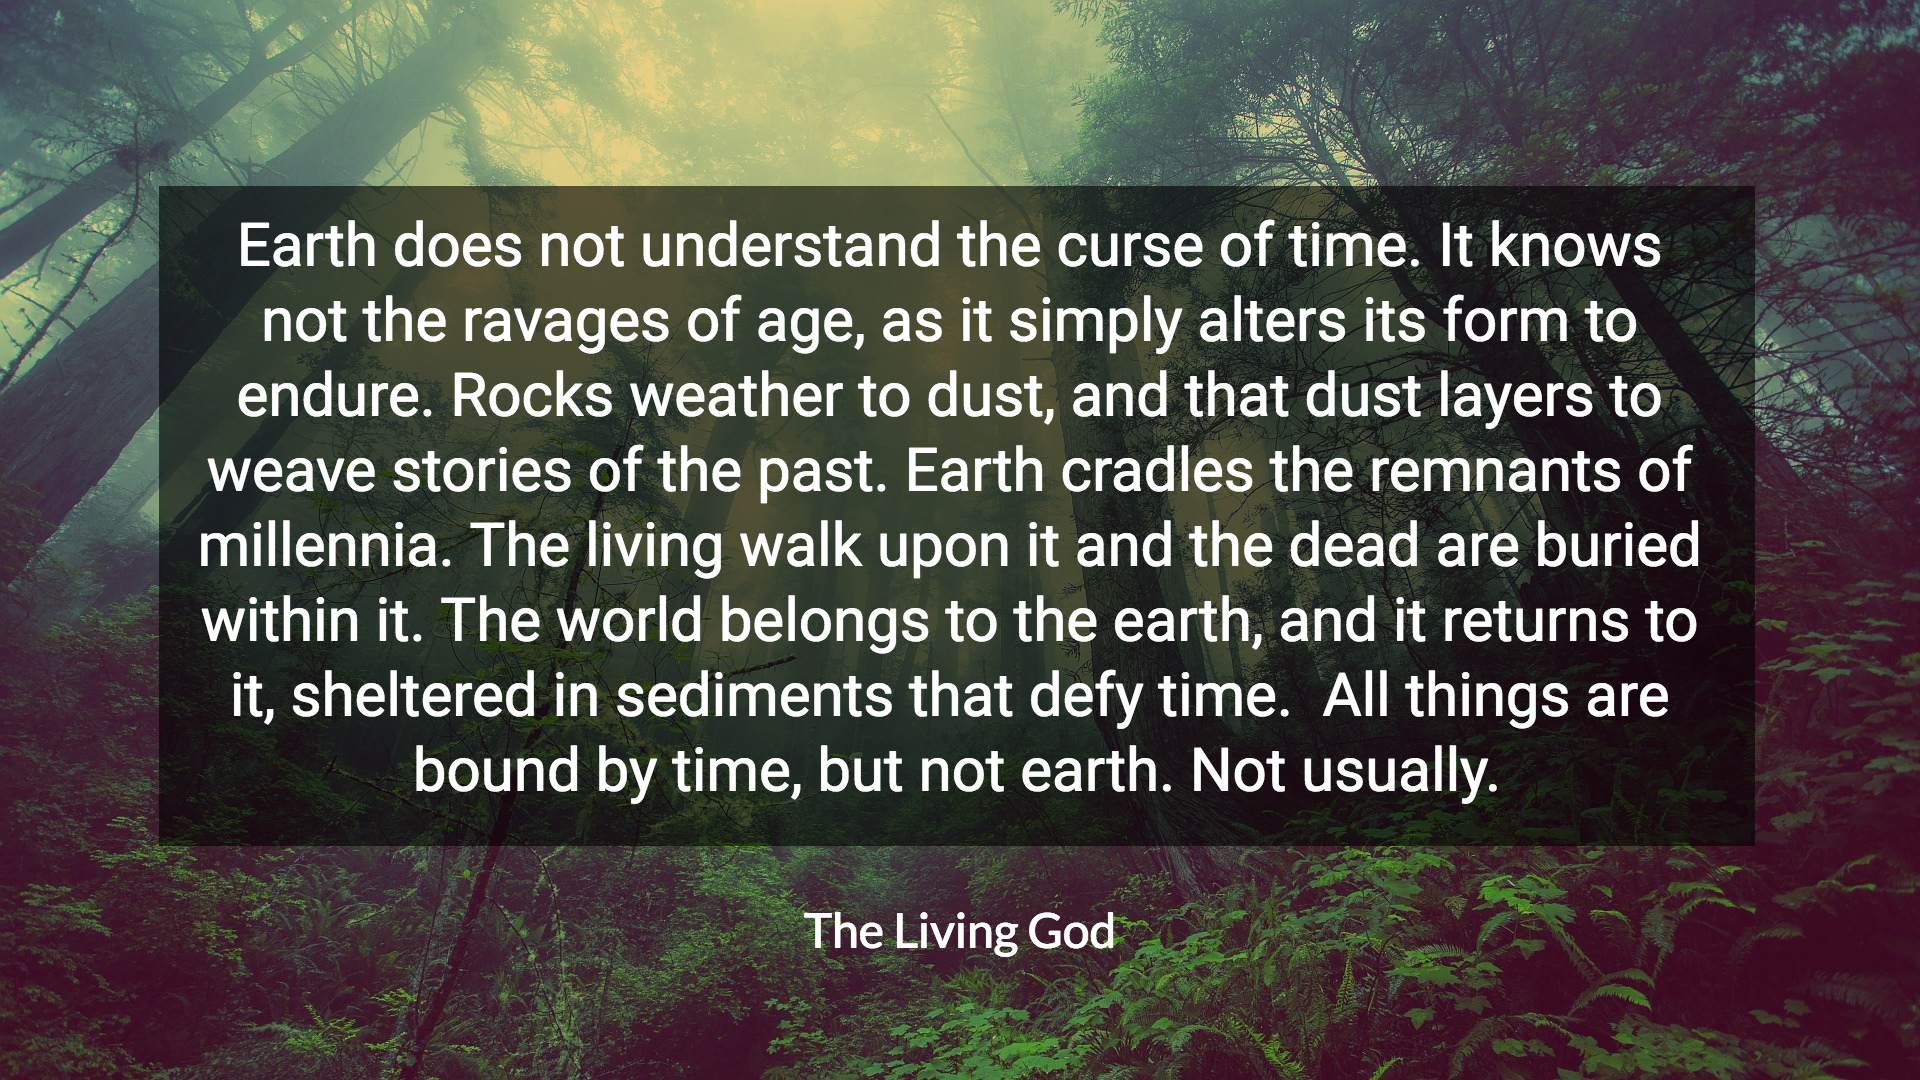 earth does not understand the curse of time it knows not the ravages of age as it...